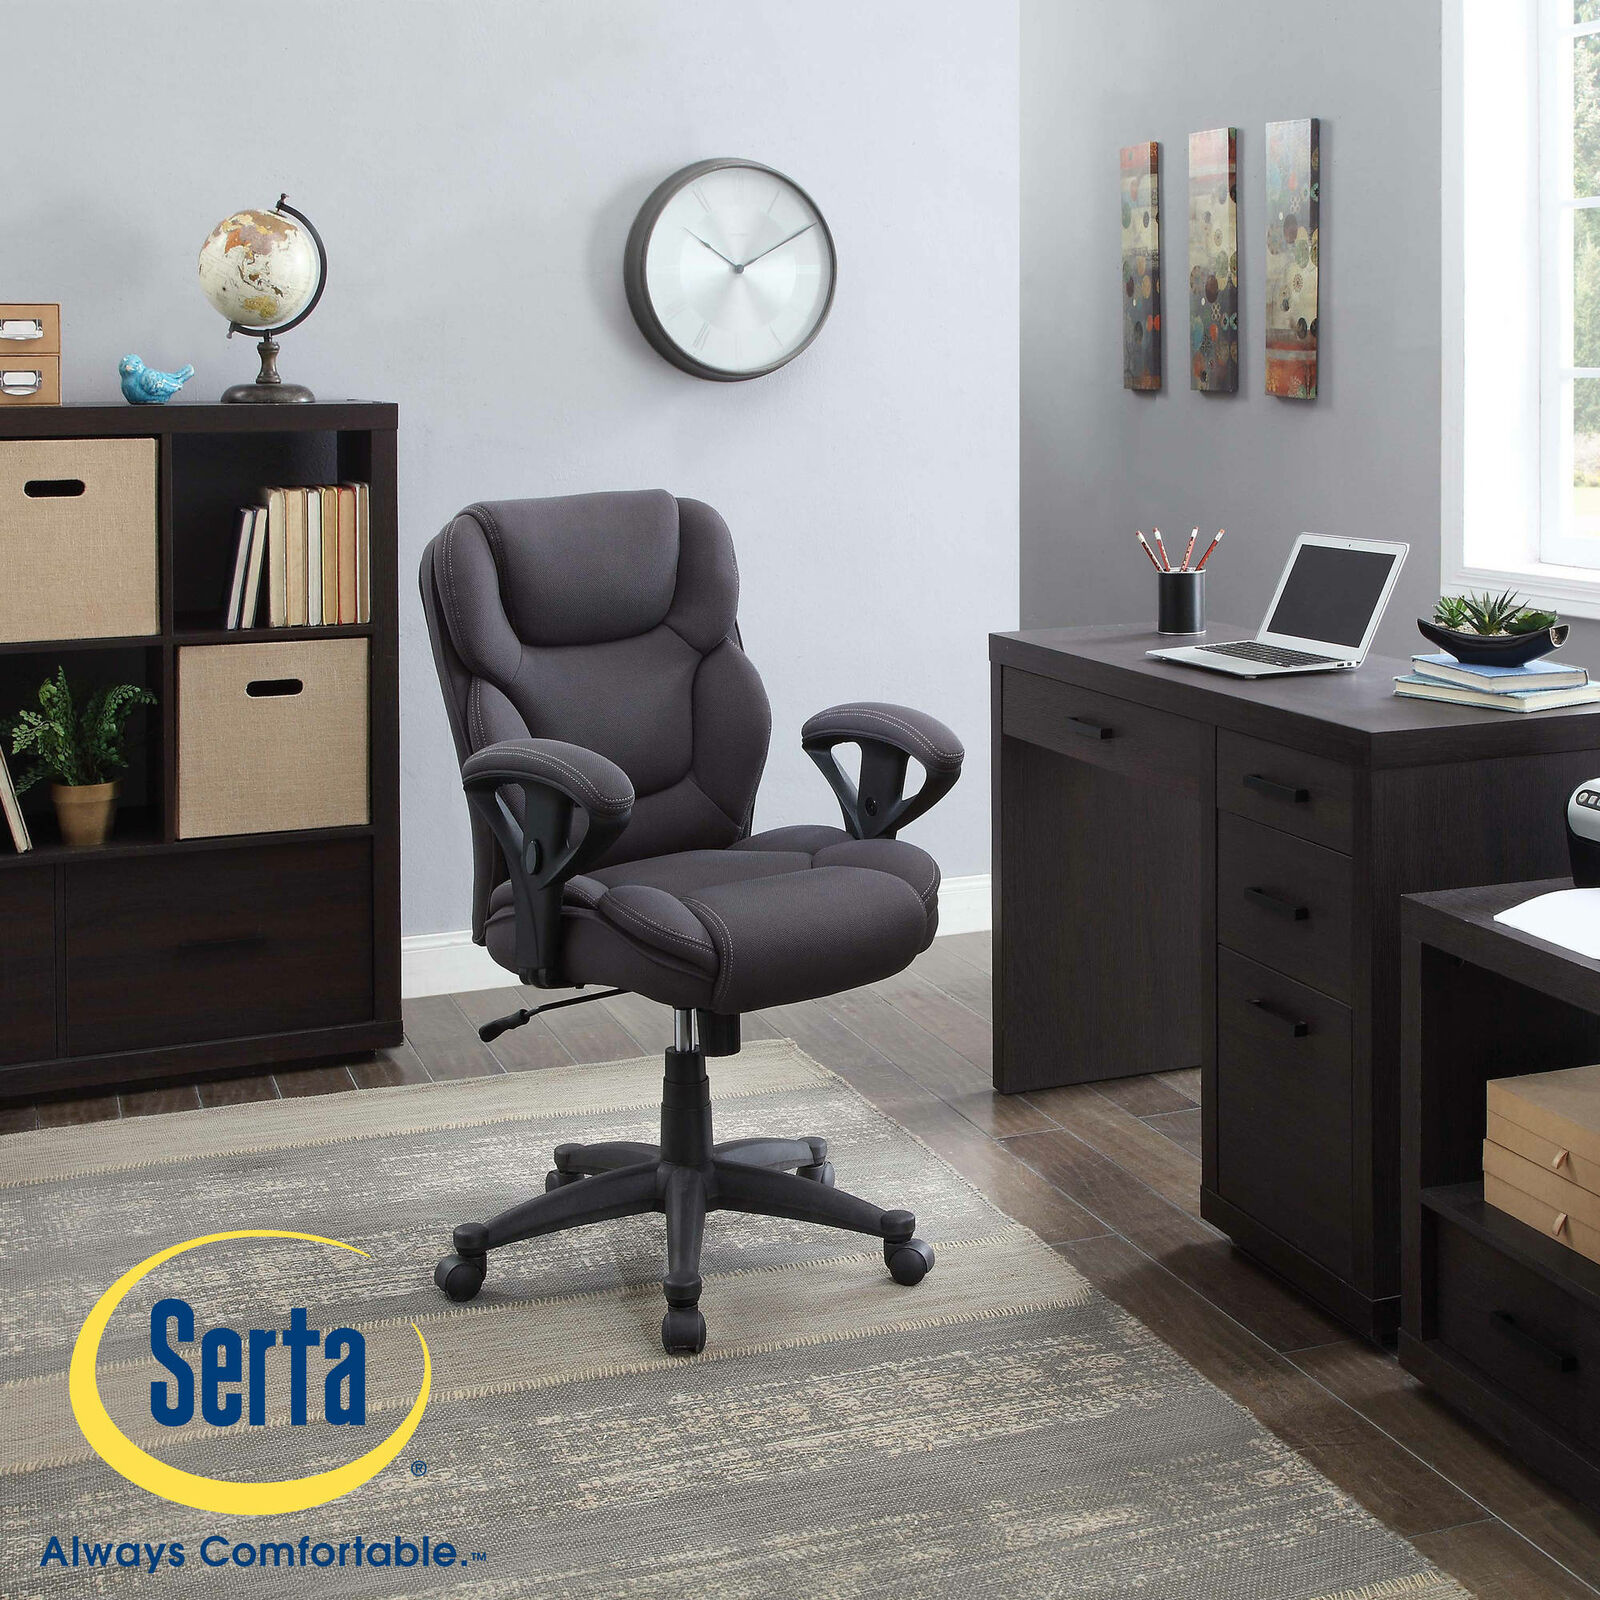 Serta Gray Mesh Fabric Big and Tall Manager Chair Computer Office Desk High  Back